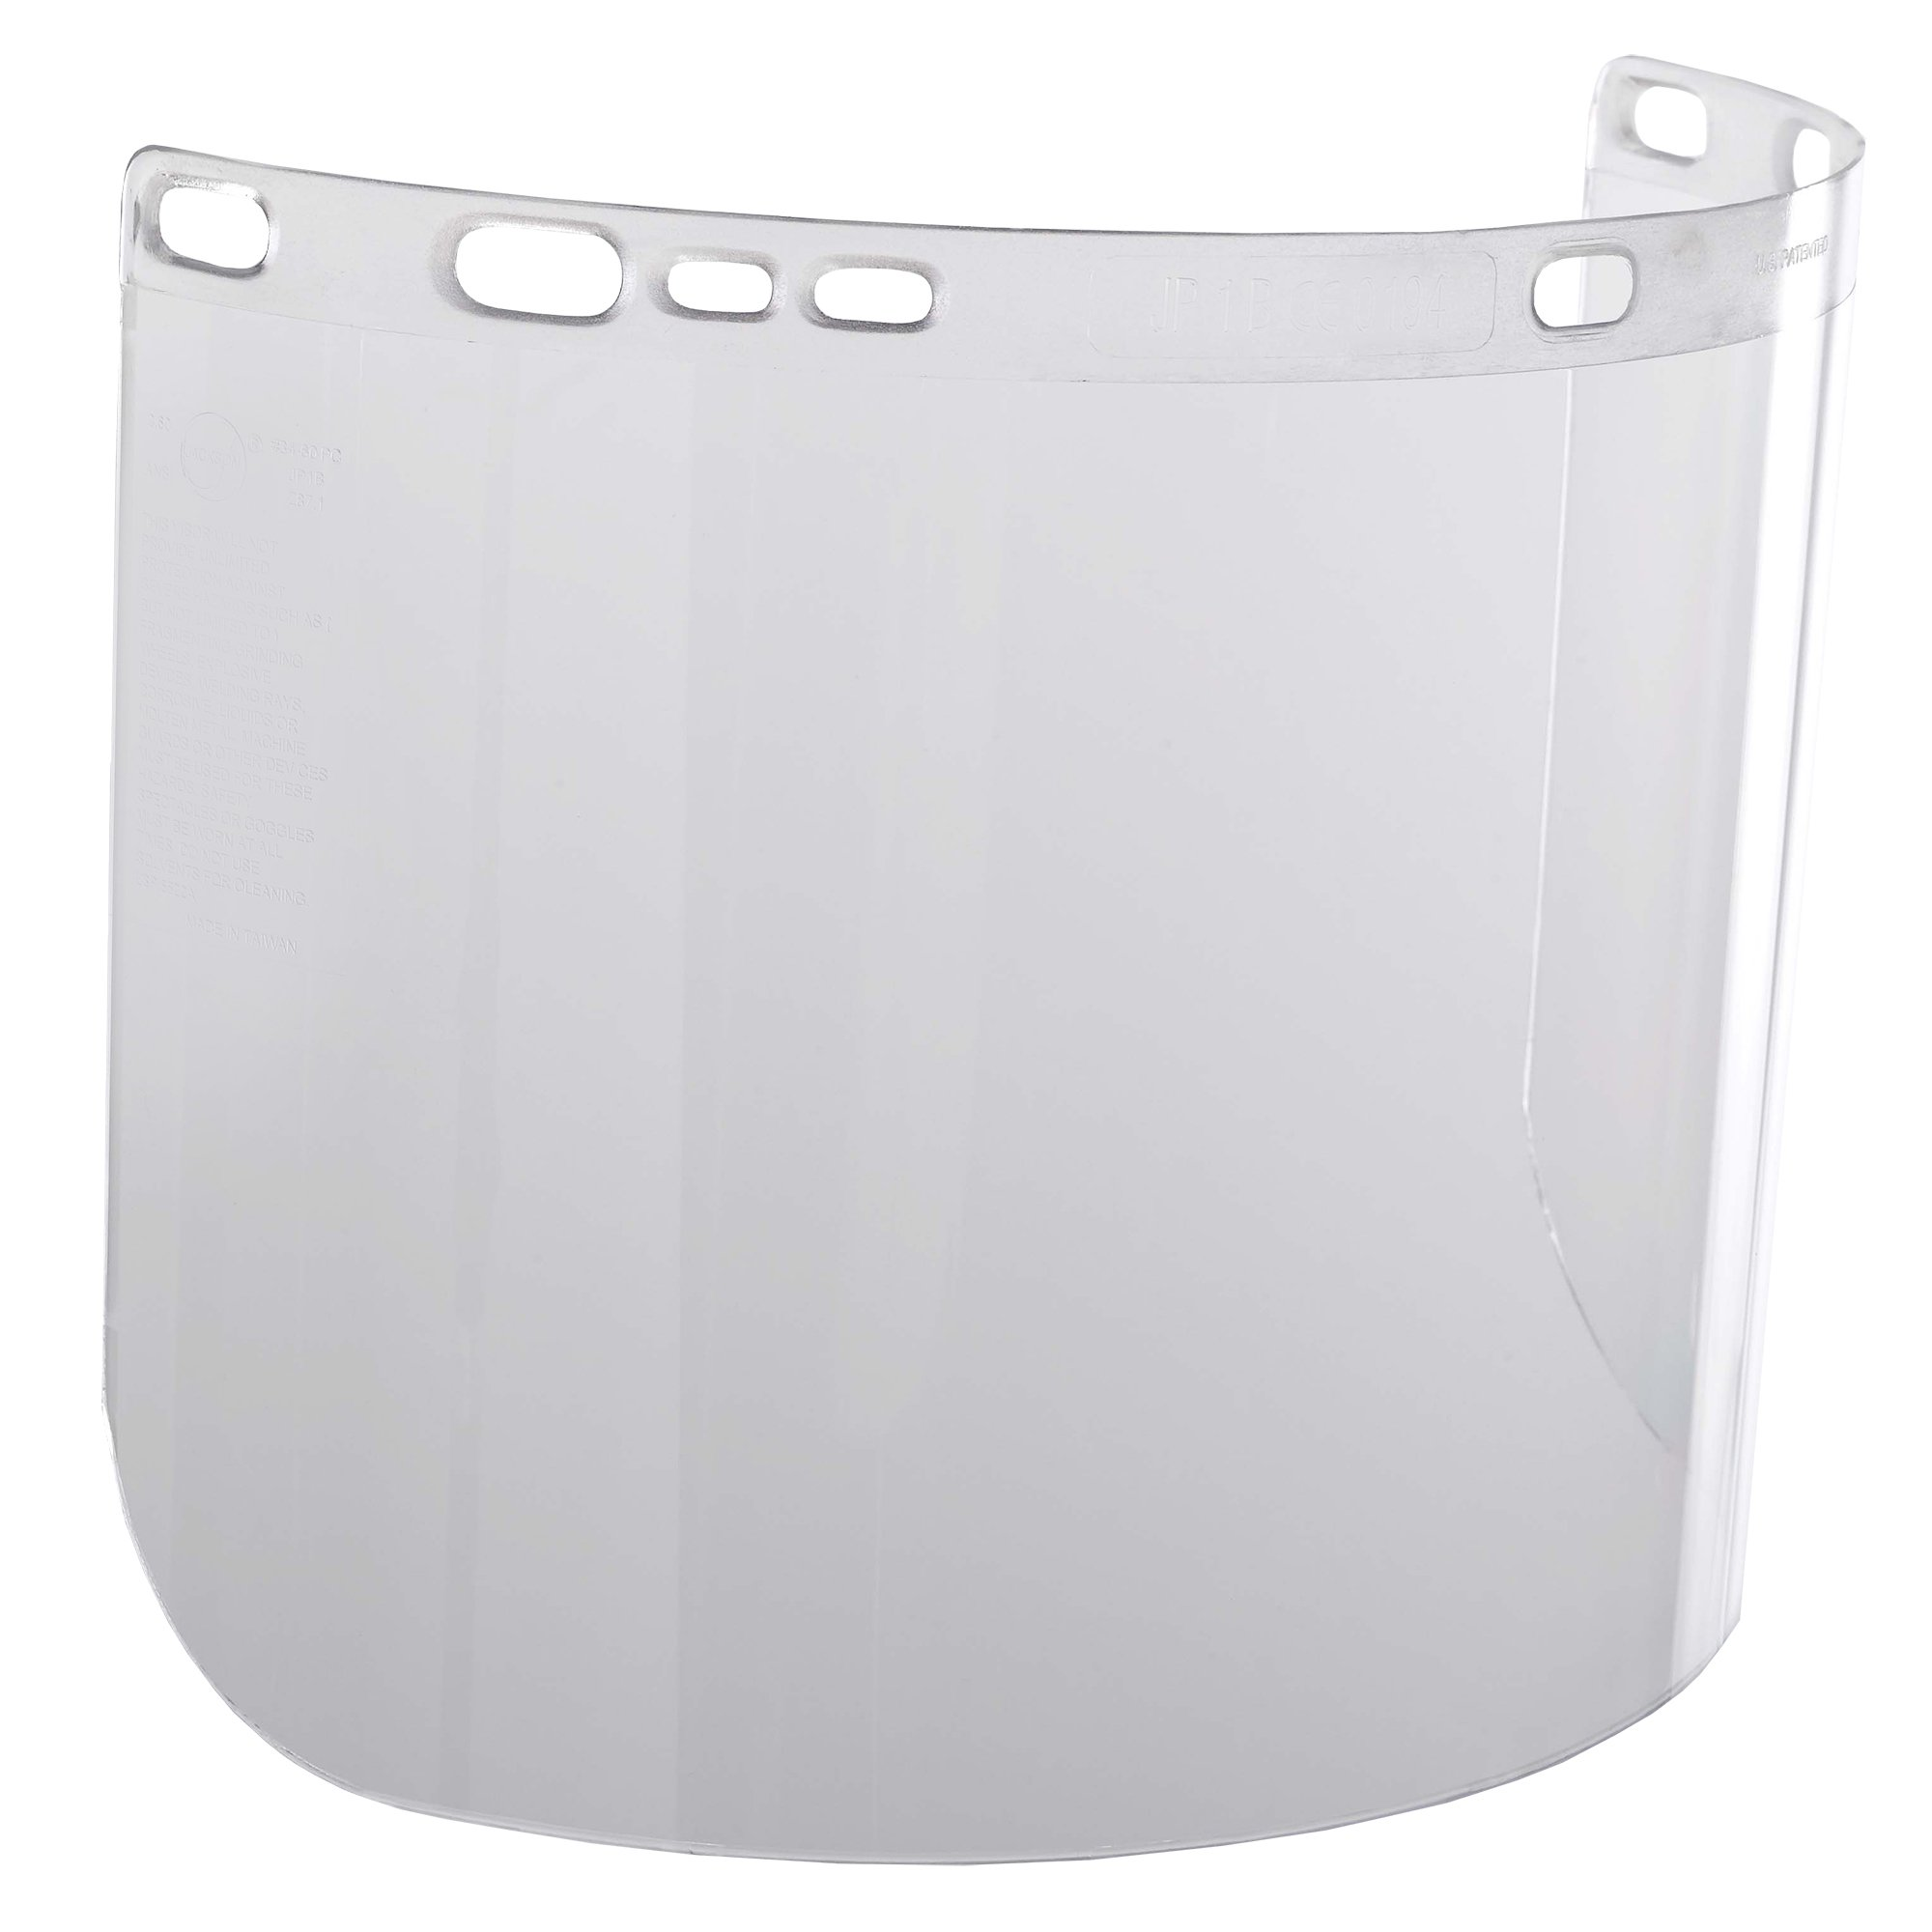 """Jackson Safety F20 High Impact Face Shield (14132), Polycarbonate, 8"""" x 15.5"""" x 0.06"""", Clear, Face Protection, Unbound, 36 Shields / Case"""